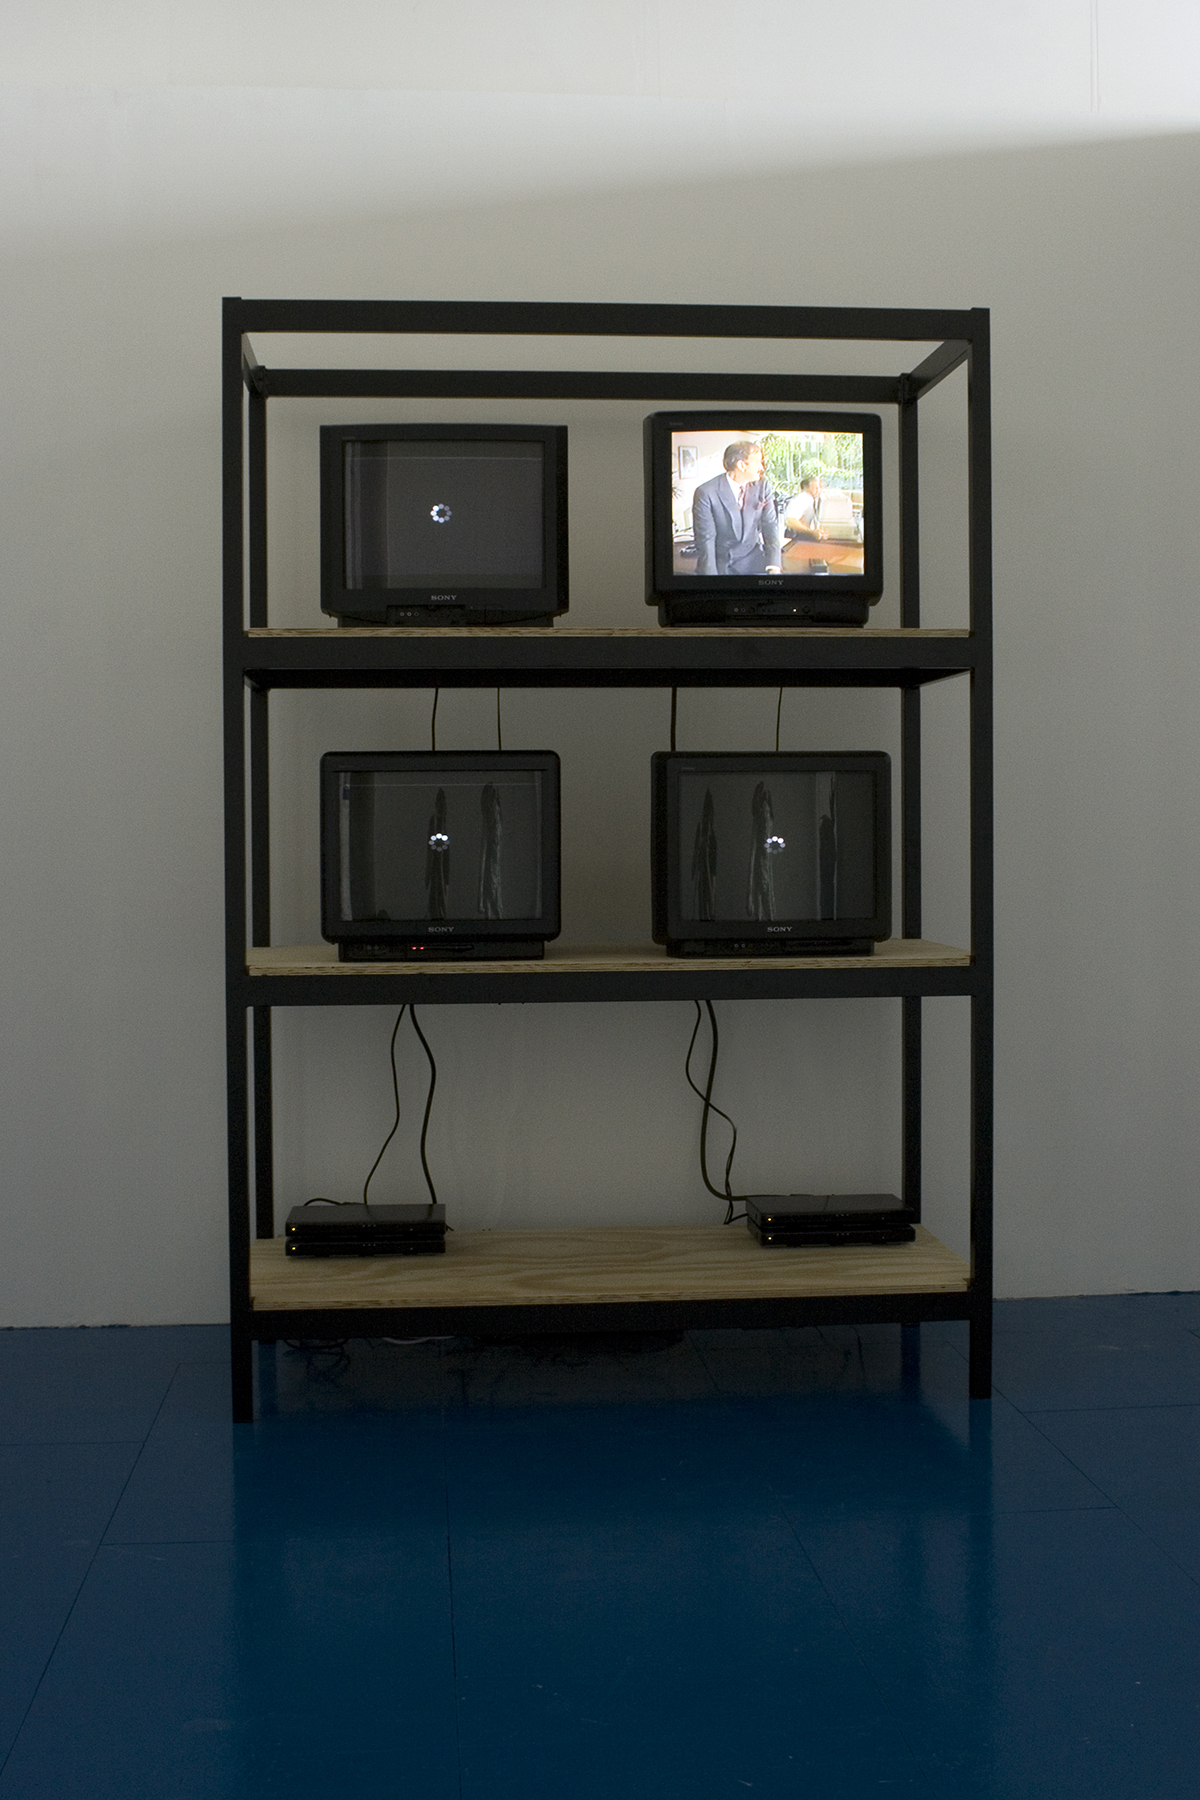 Say Standing Reserve, Say Computers, Tellys, Encyclopedias, Amateurs and Art,2011, installation view